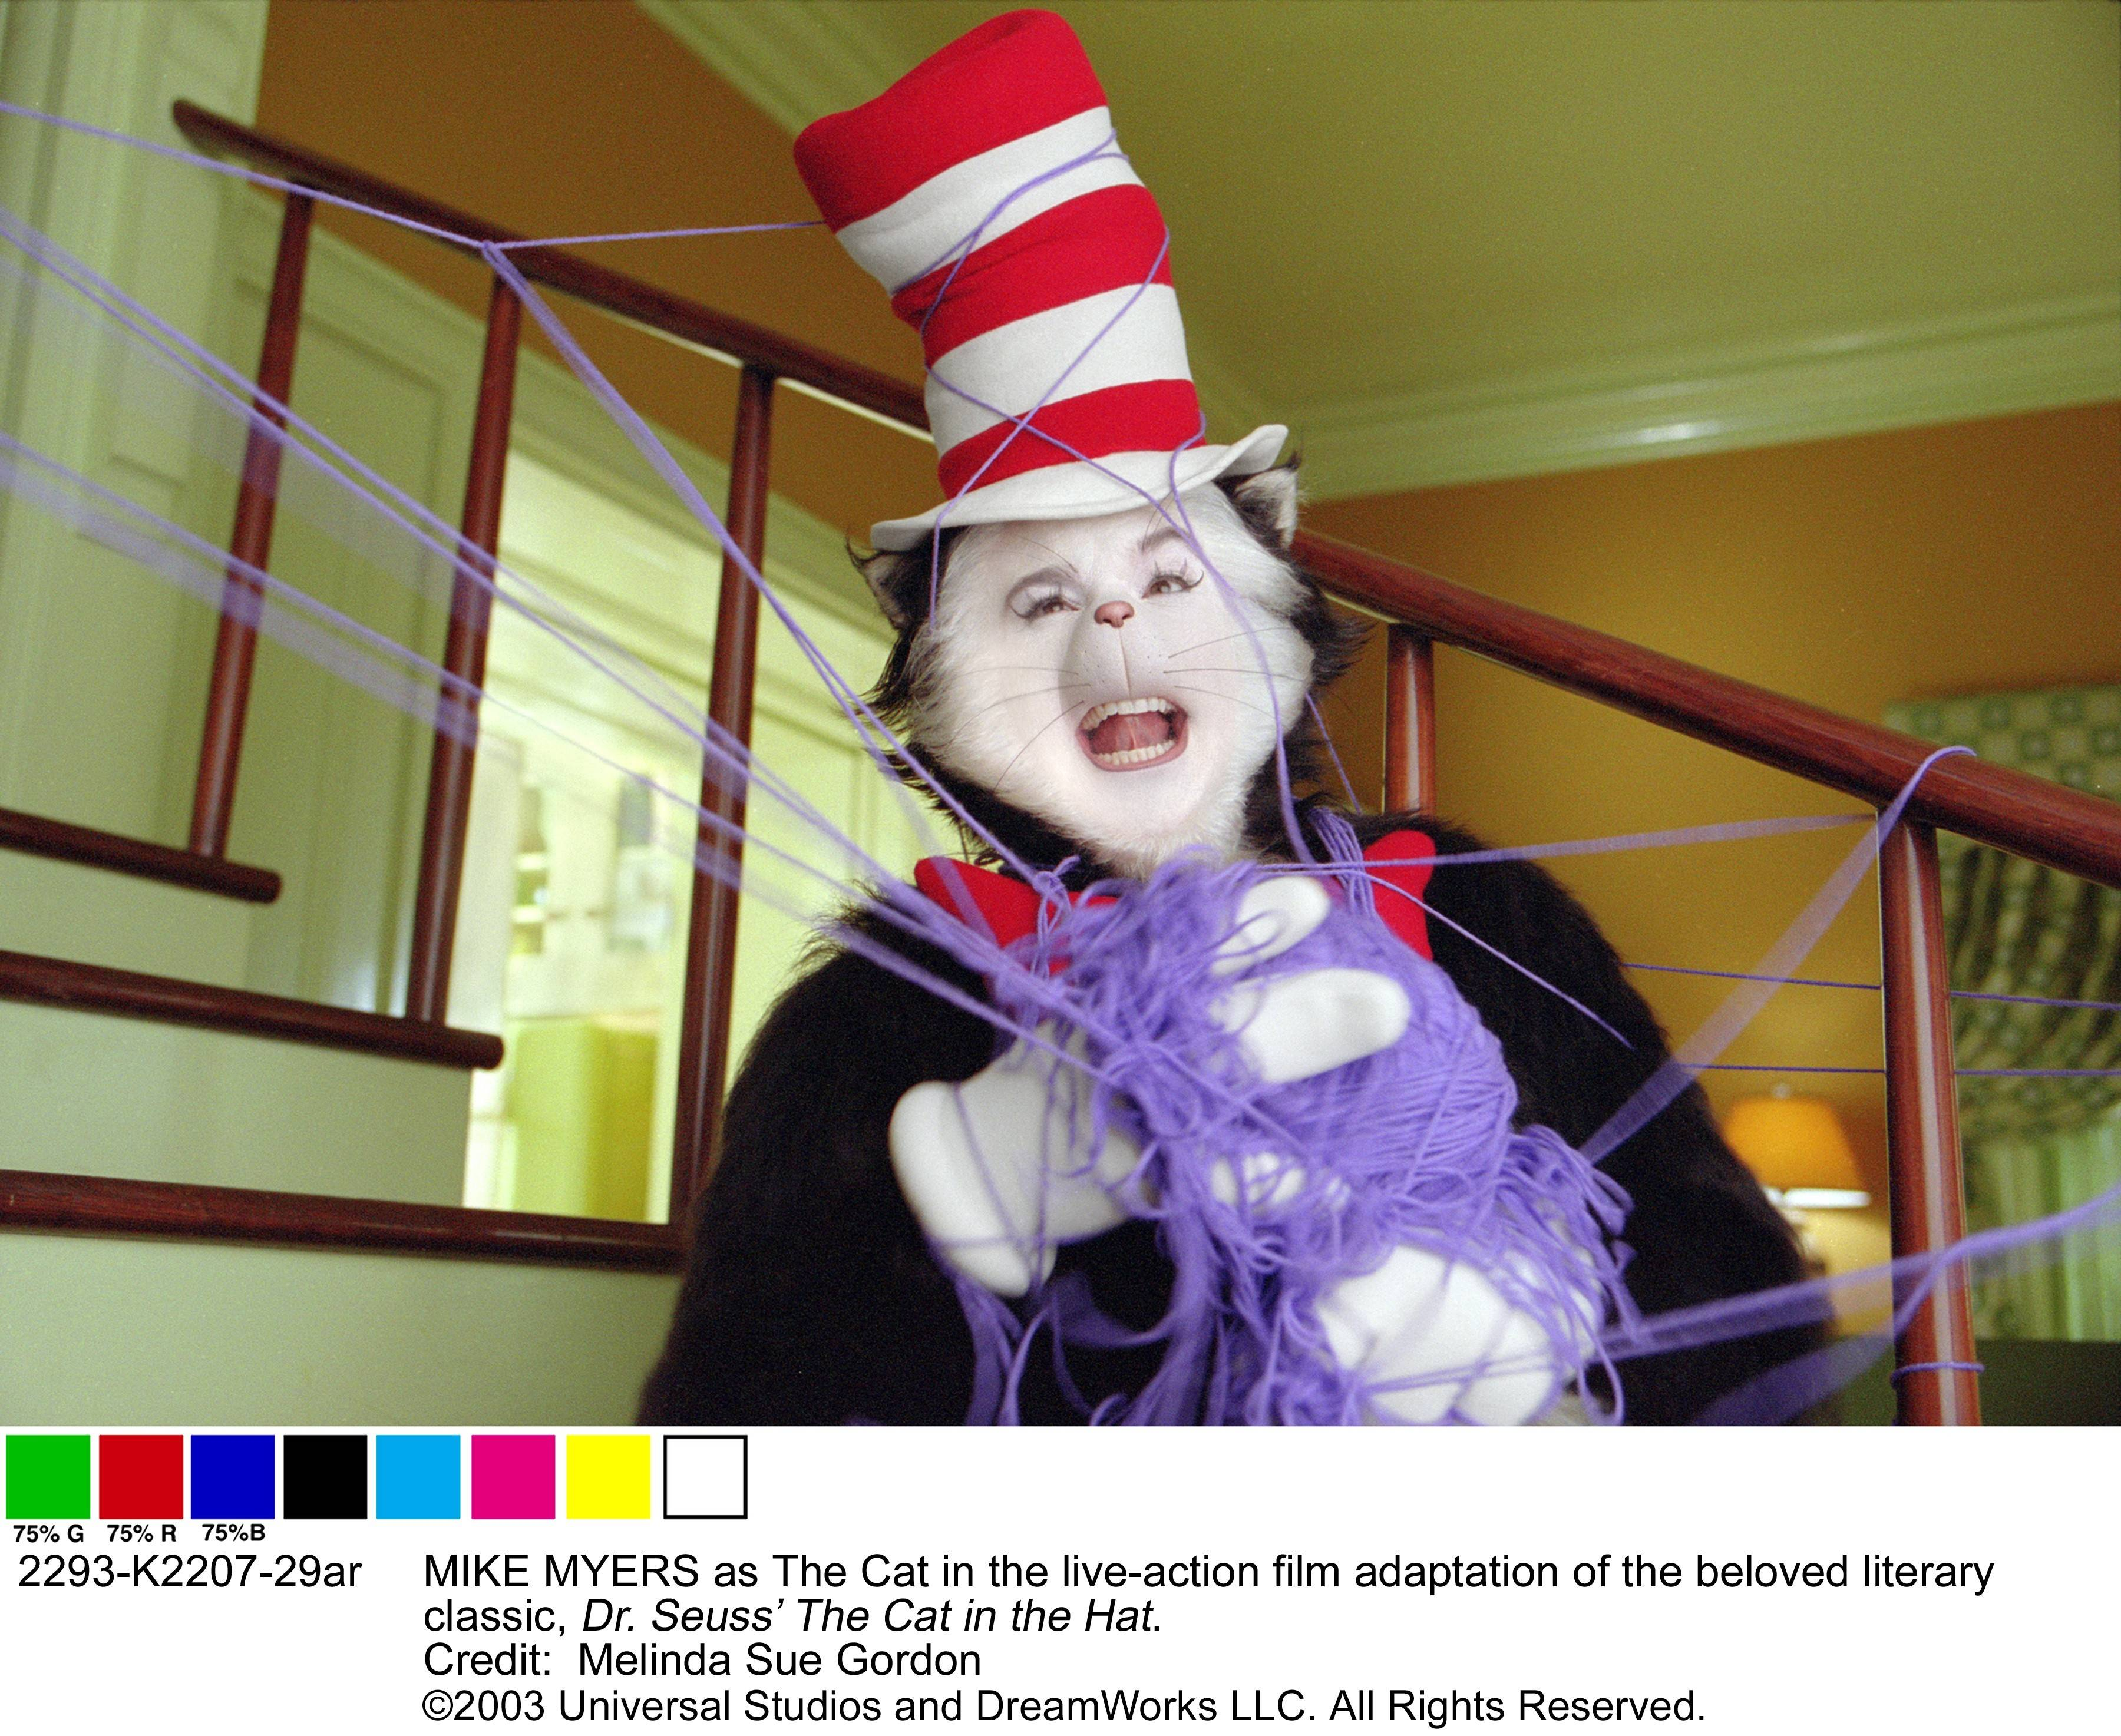 "Mike Smithson, who was born in Woodstock and grew up in McHenry, designed the elaborate makeup for star Mike Myers in ""Dr. Seuss' Cat in the Hat."""